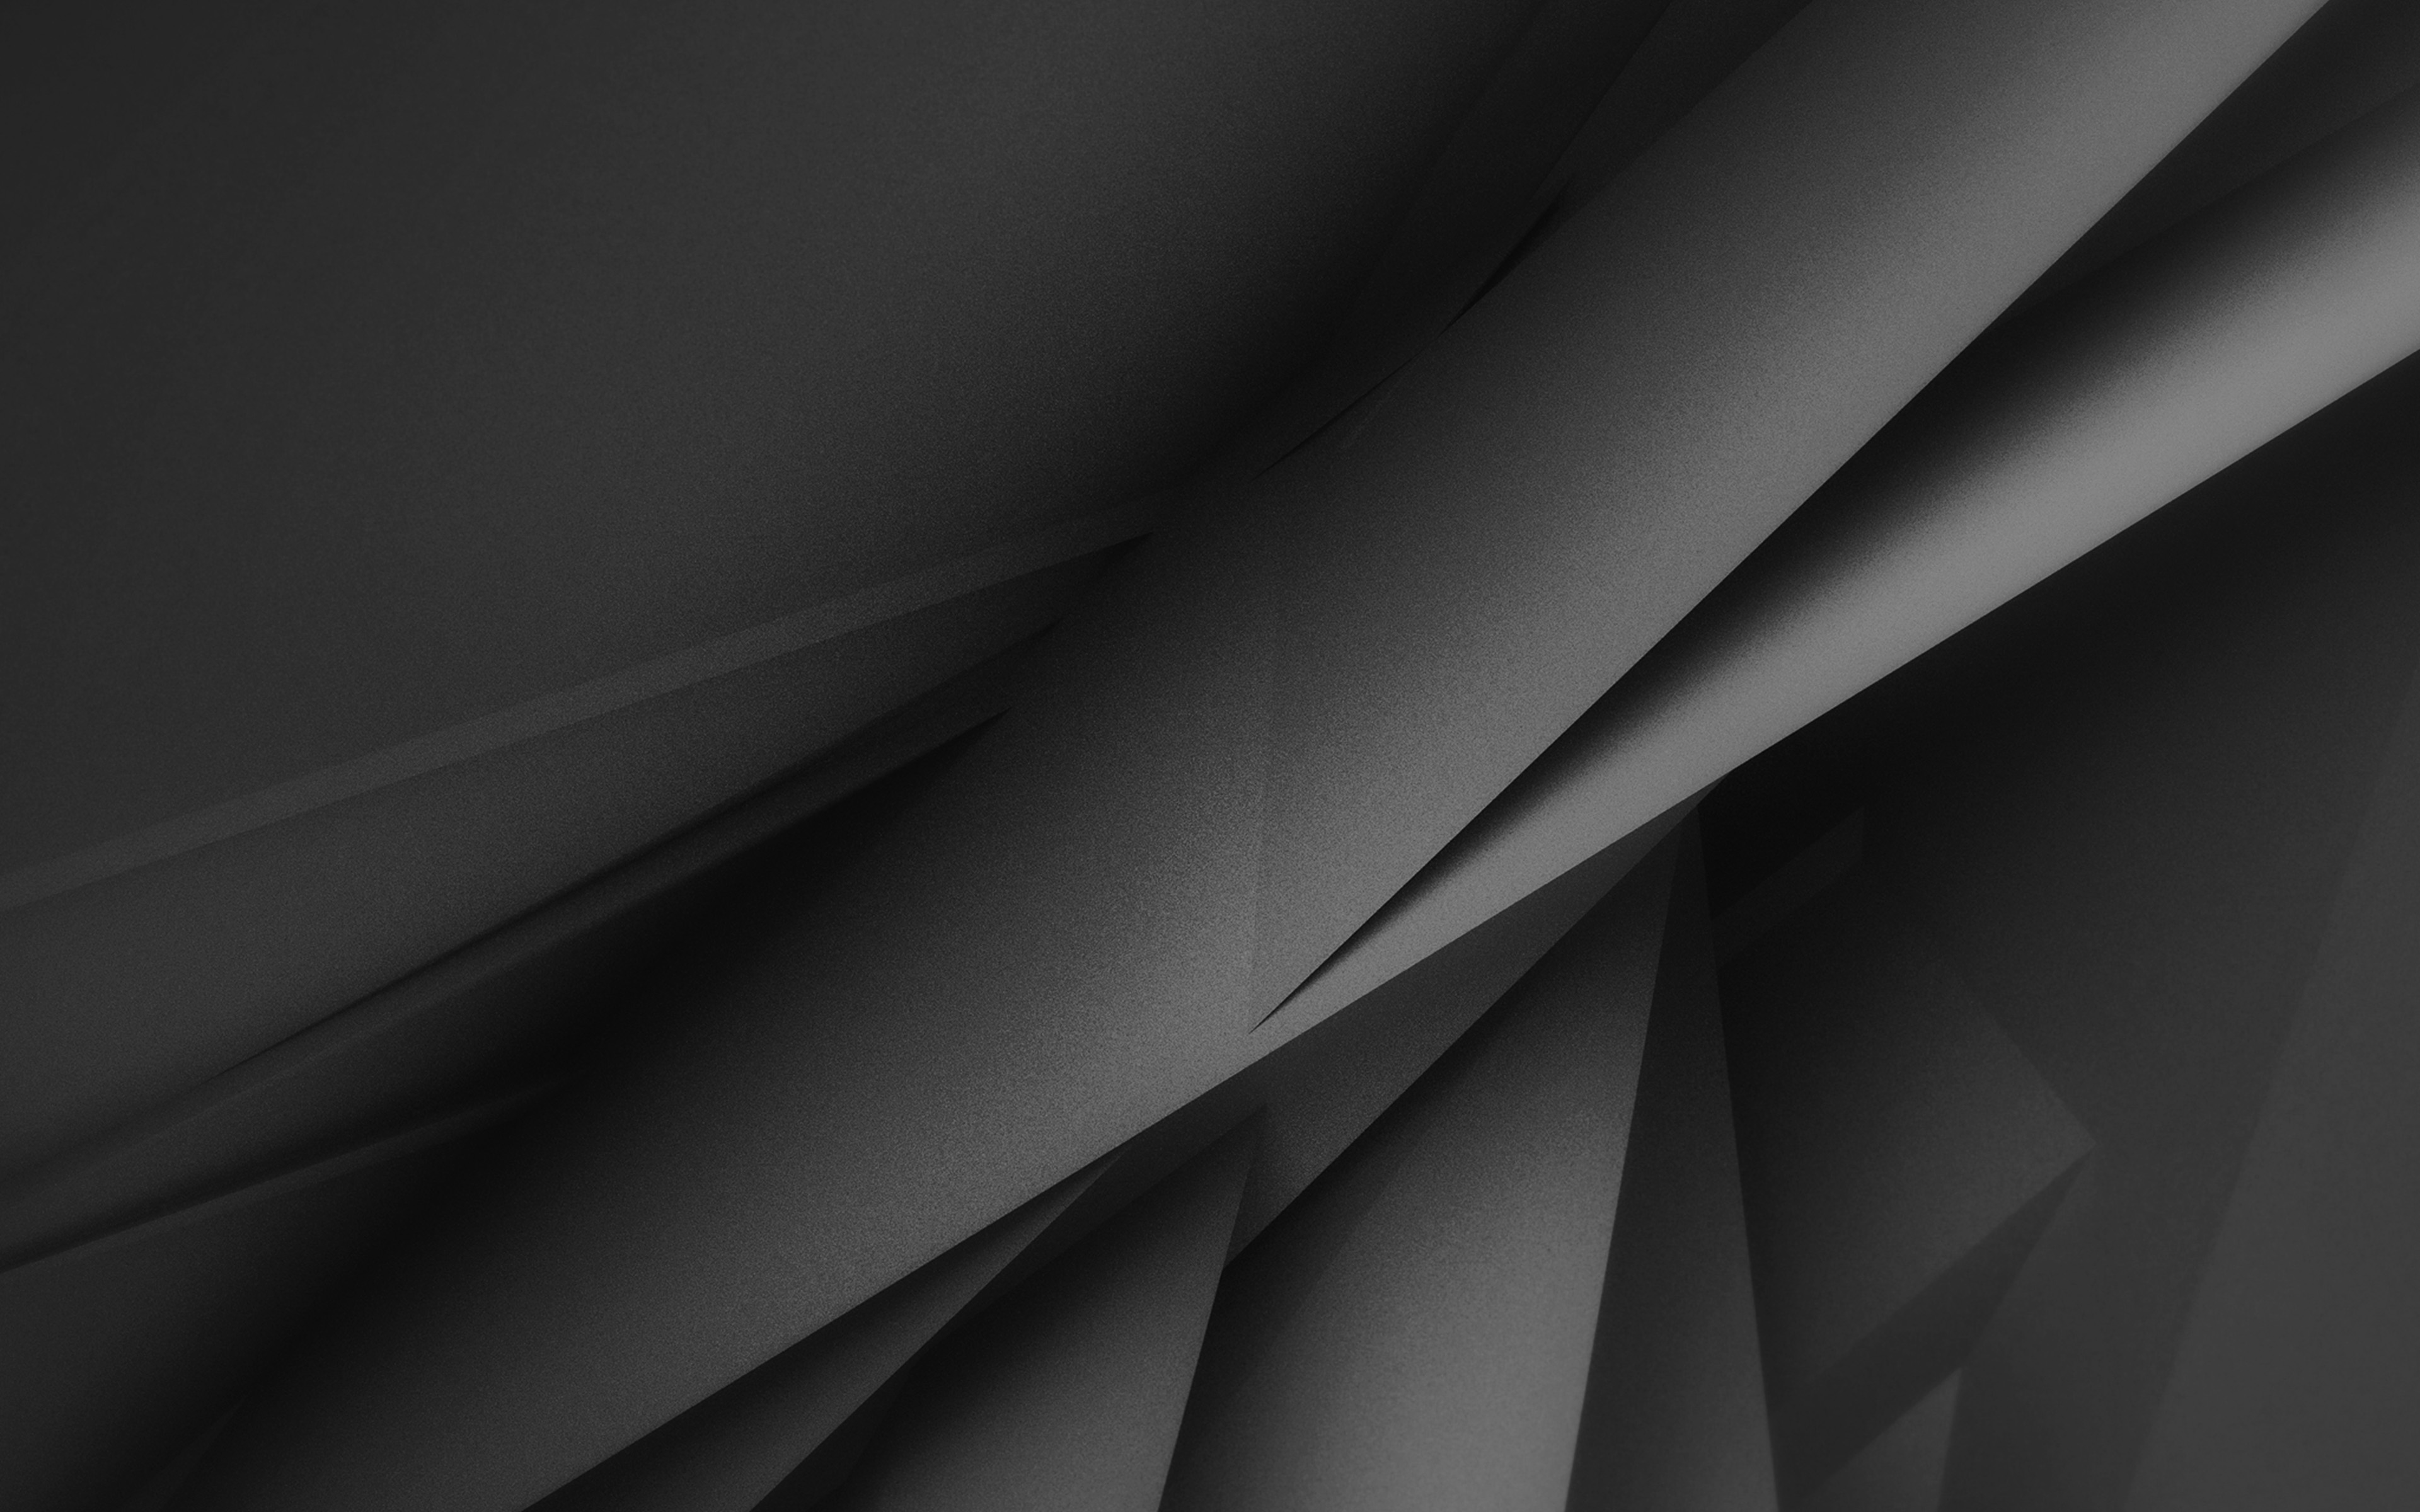 Vs30 abstract background line shape gray minimal3d pattern bw dark wallpaper - Gray background images ...